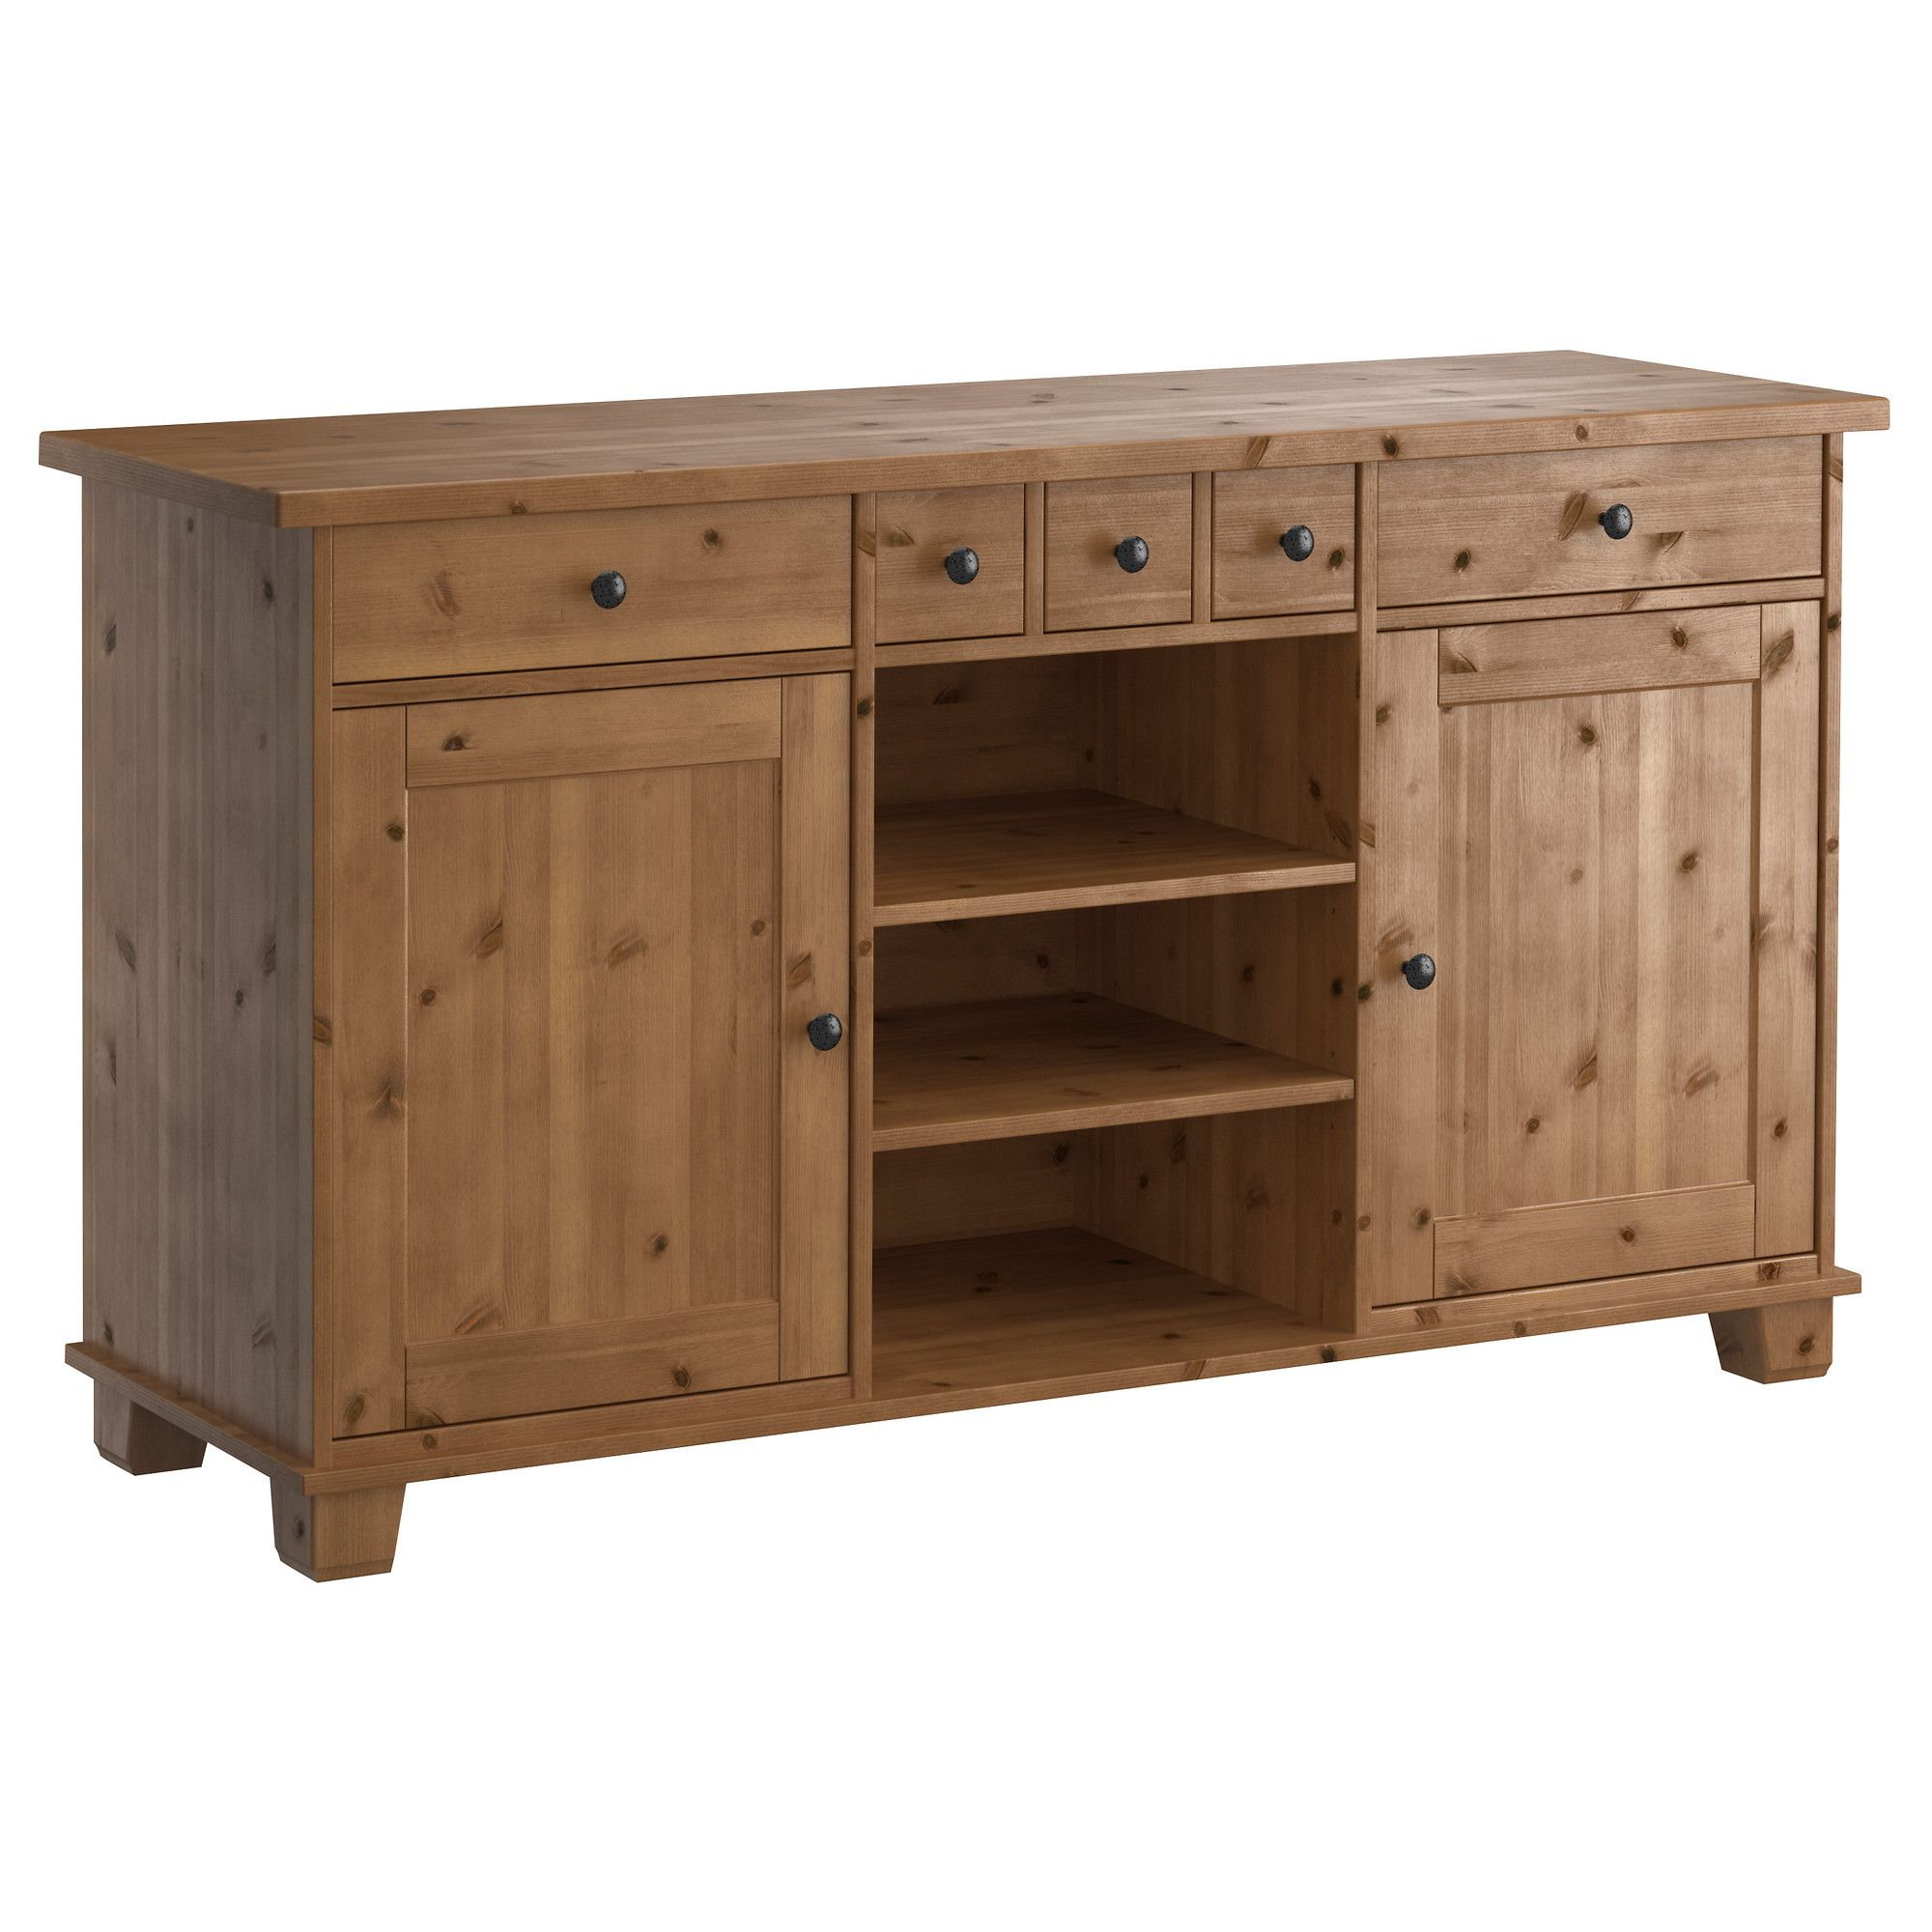 Shop For Furniture, Lighting, Home Accessories & More | Home In Light White Oak Two Tone Modern Buffets (View 17 of 20)